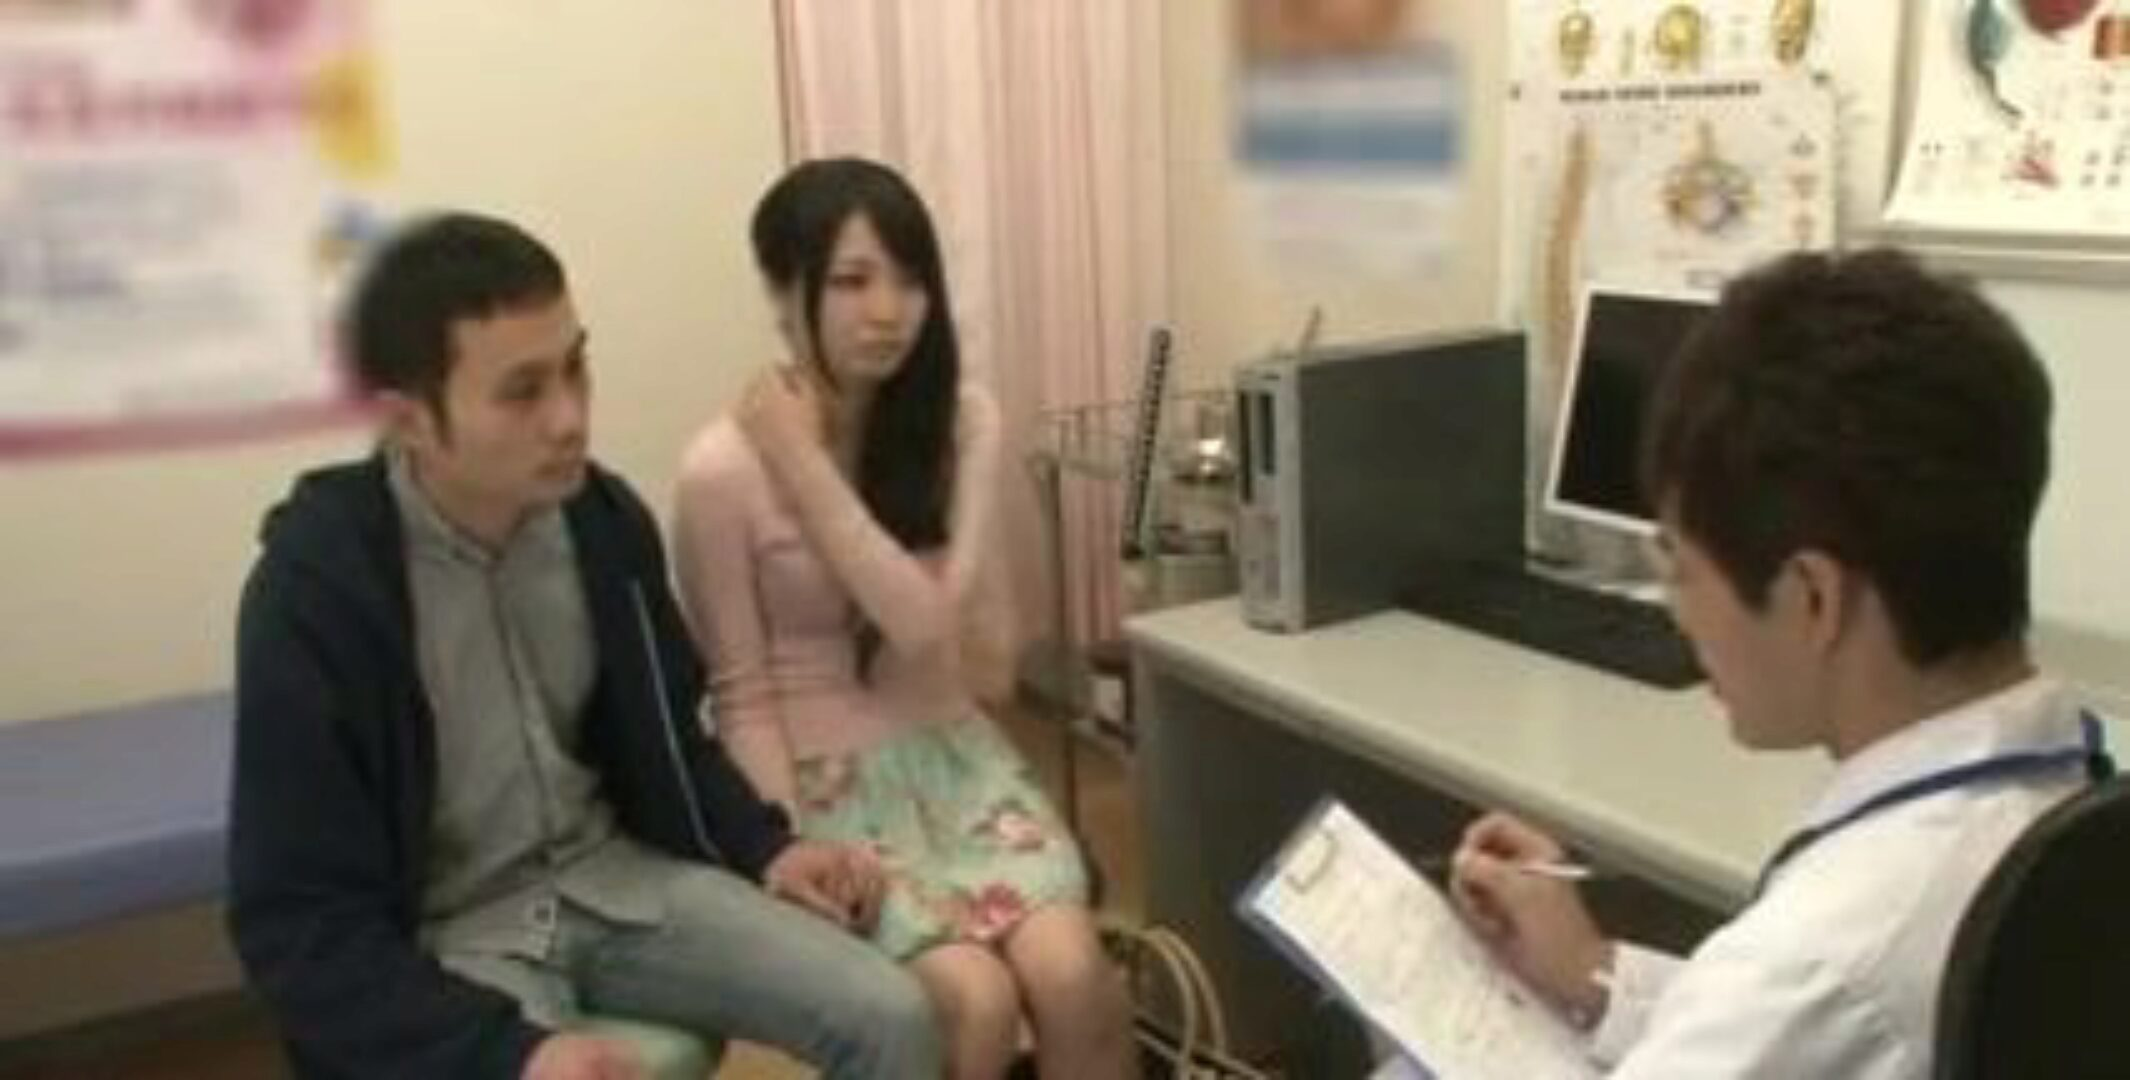 Cheating Wife Fucked Gynecologist While Husband Went out Watch Cheating Wife Fucked Gynecologist While Husband Went out movie on xHamster - the ultimate archive of free Japanese Xxx Wife porno tube movie scenes